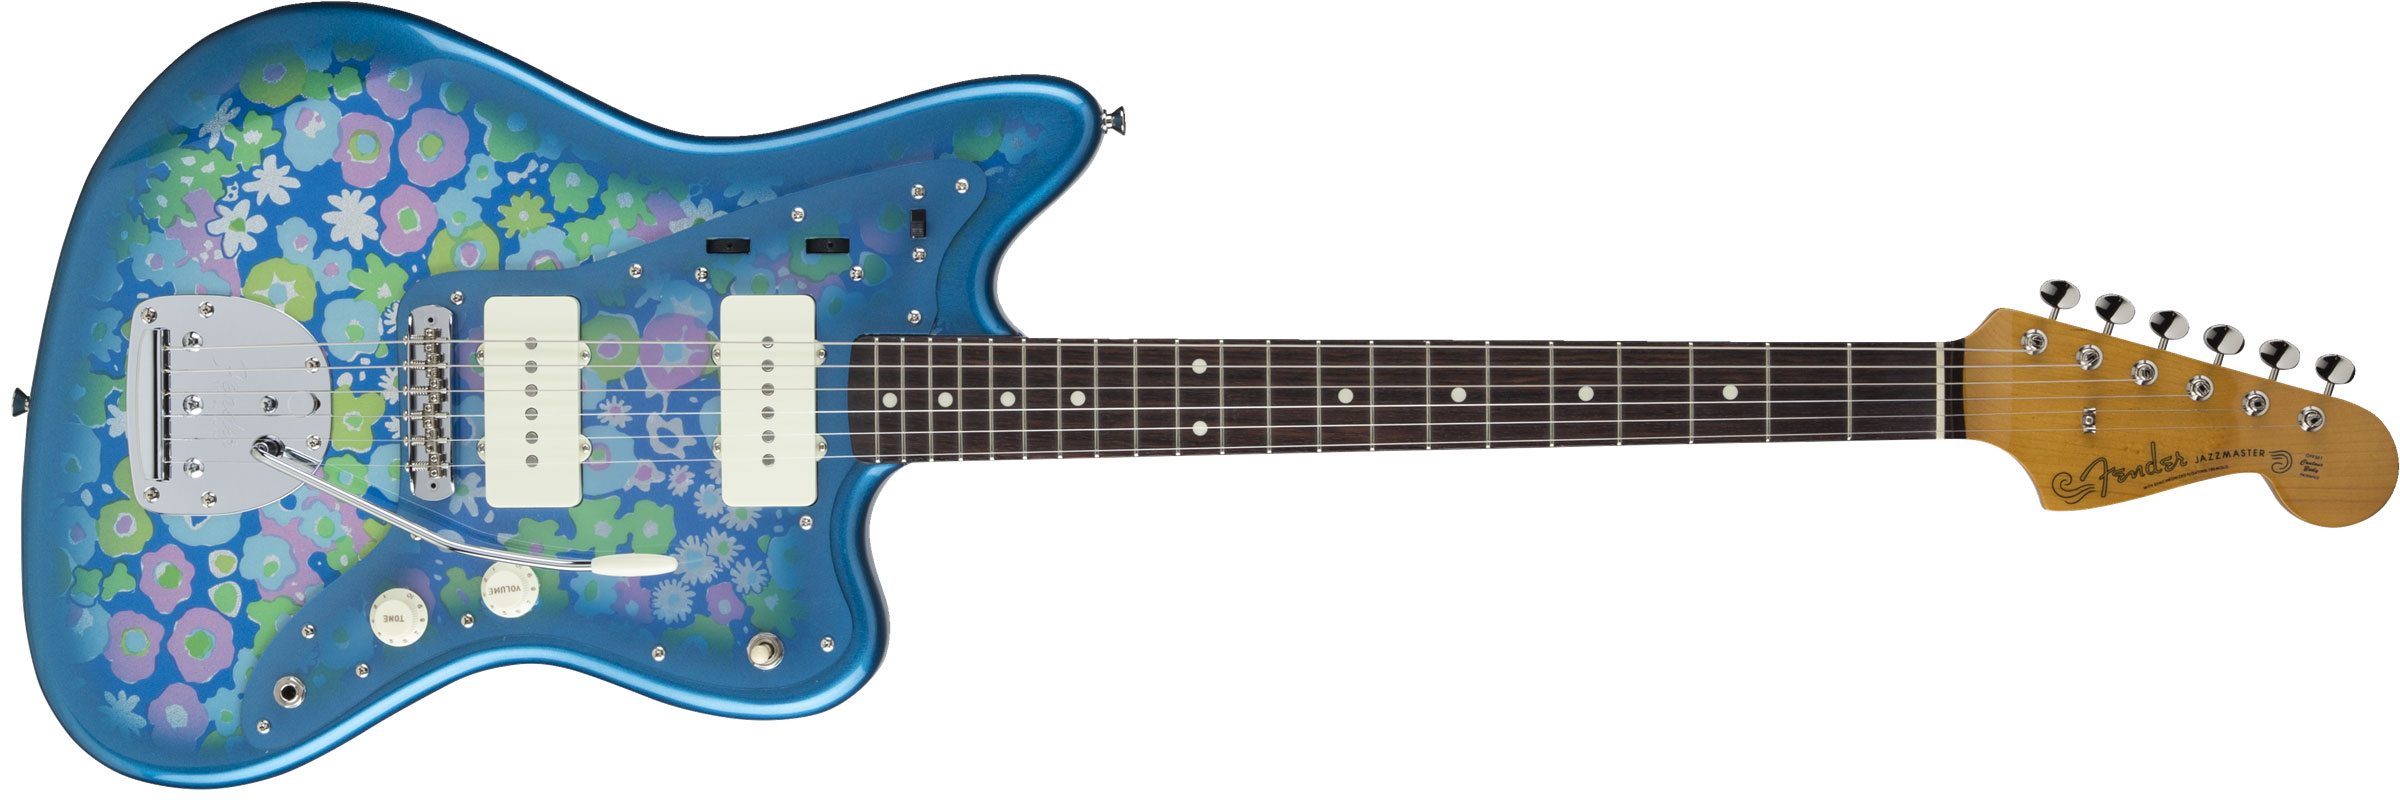 GUITARRA FENDER 535 6600 - JAPAN TRADITIONAL 60S JAZZMASTER - 350 - BLUE FLOWER